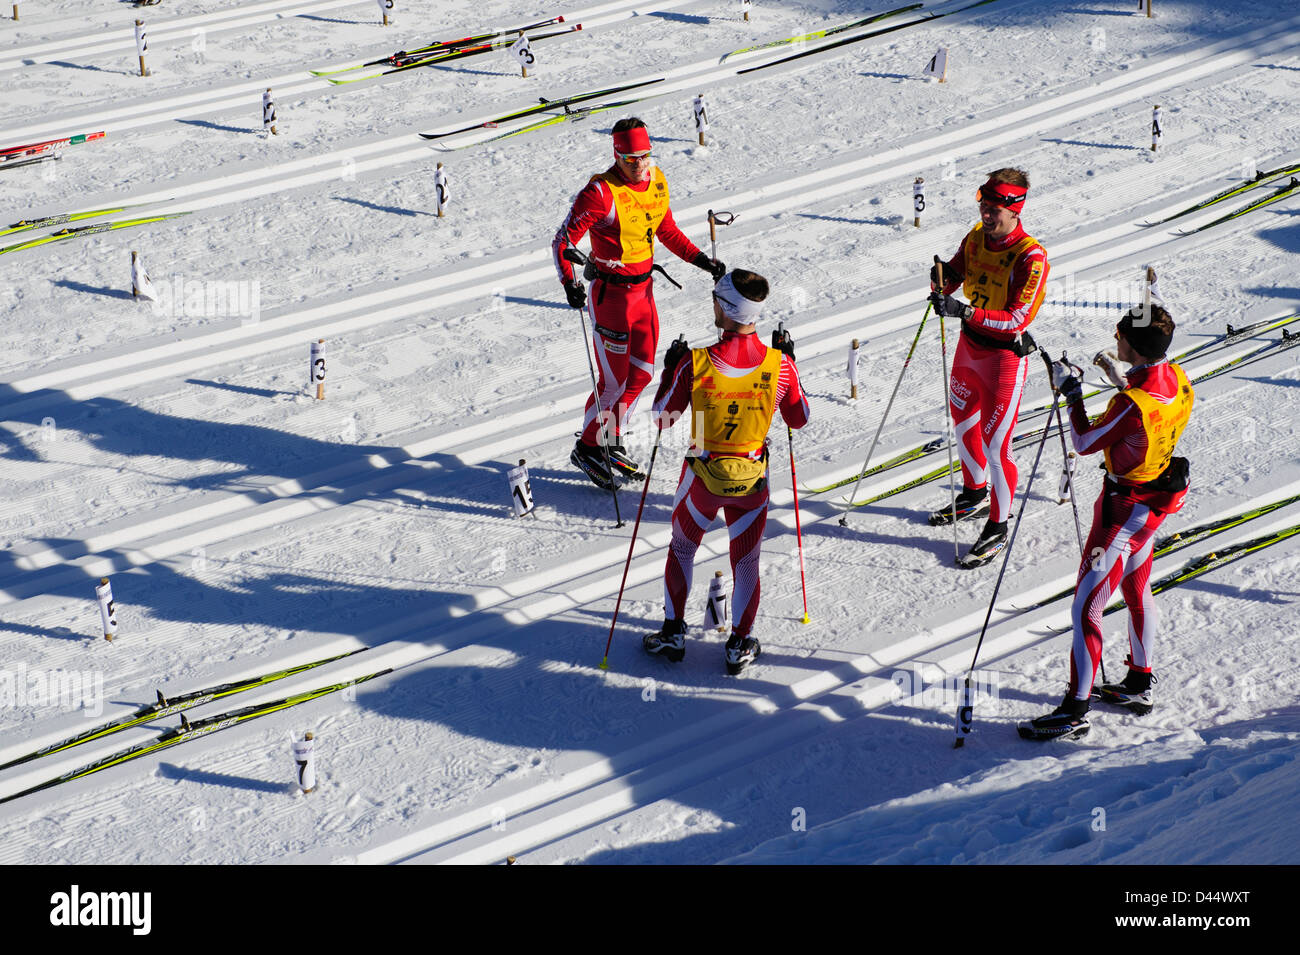 A Cross-country ski team before the Bieg Piastow race, Jakuszyce, Poland. - Stock Image